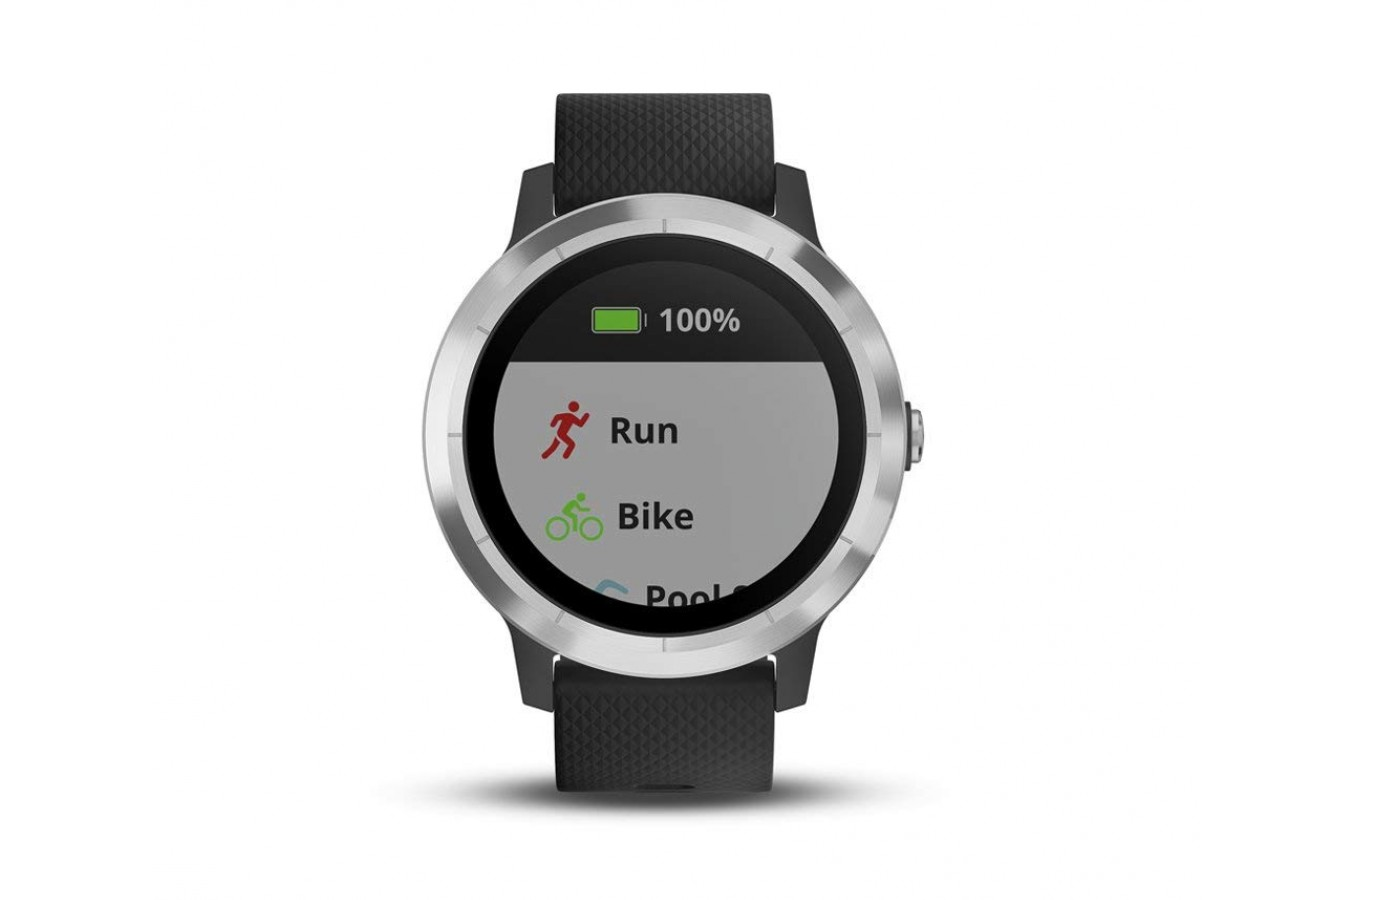 The preloaded indoor and GPS outdoor sports on your watch include yoga, running, swimming, stand-up paddle-boarding, and even golfing.